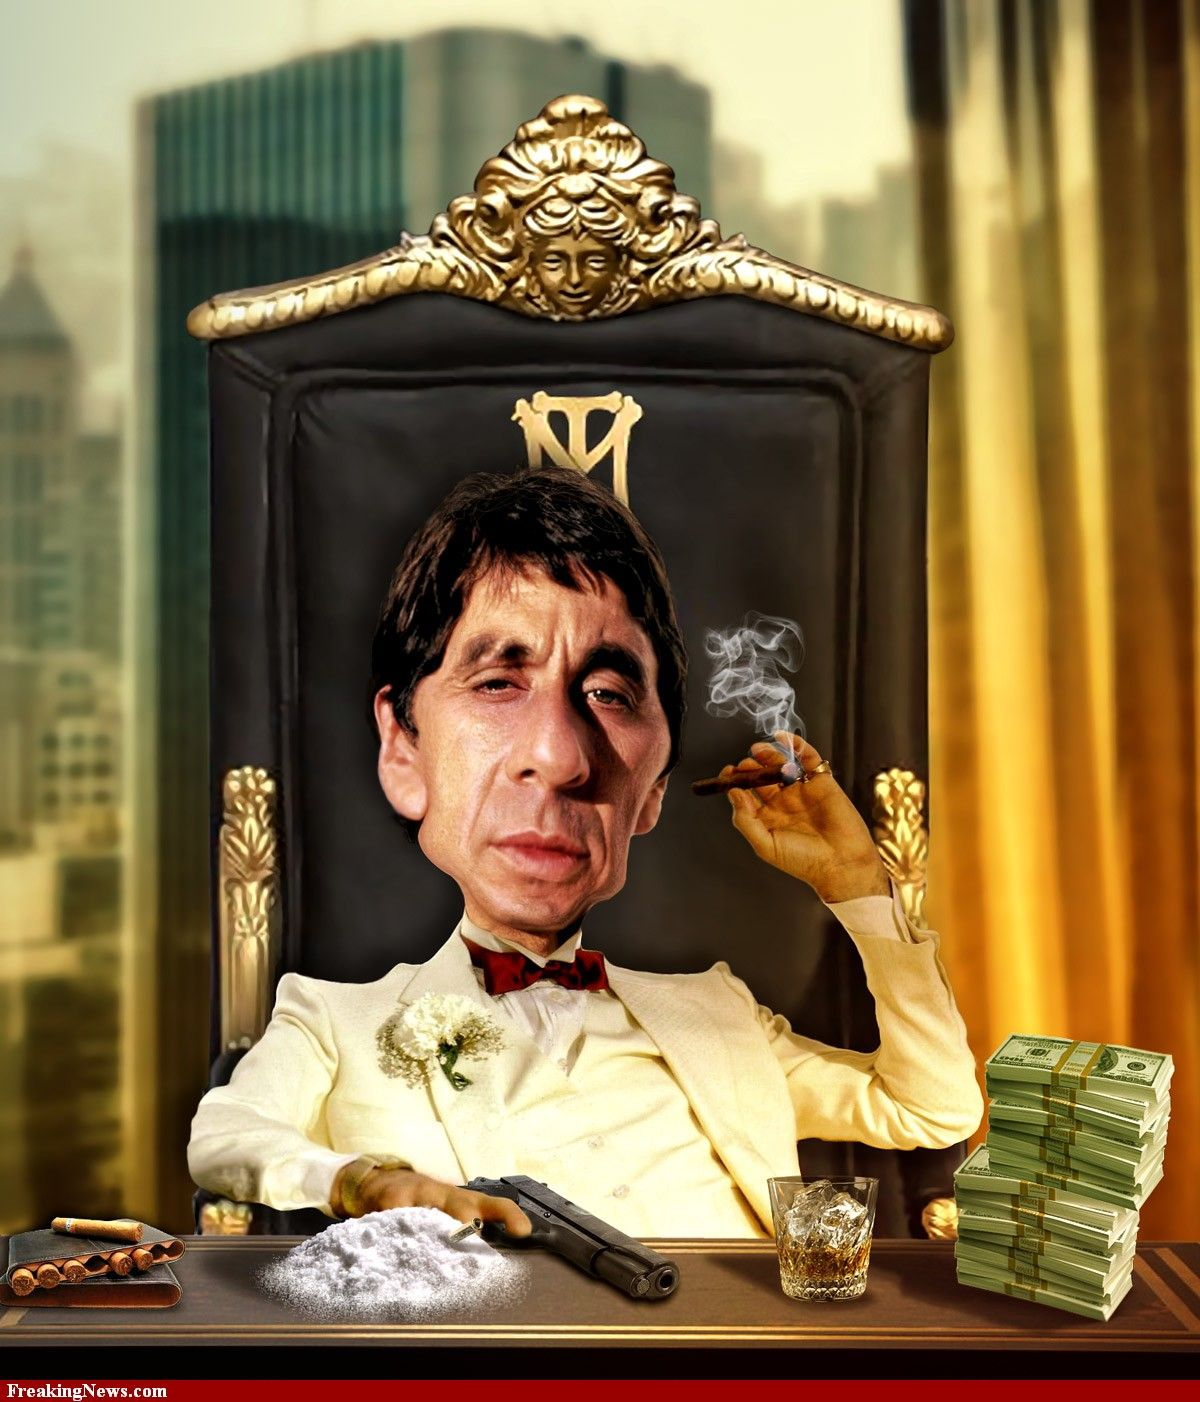 Scarface scarface pinterest al pacino movies and - Scarface cartoon wallpaper ...